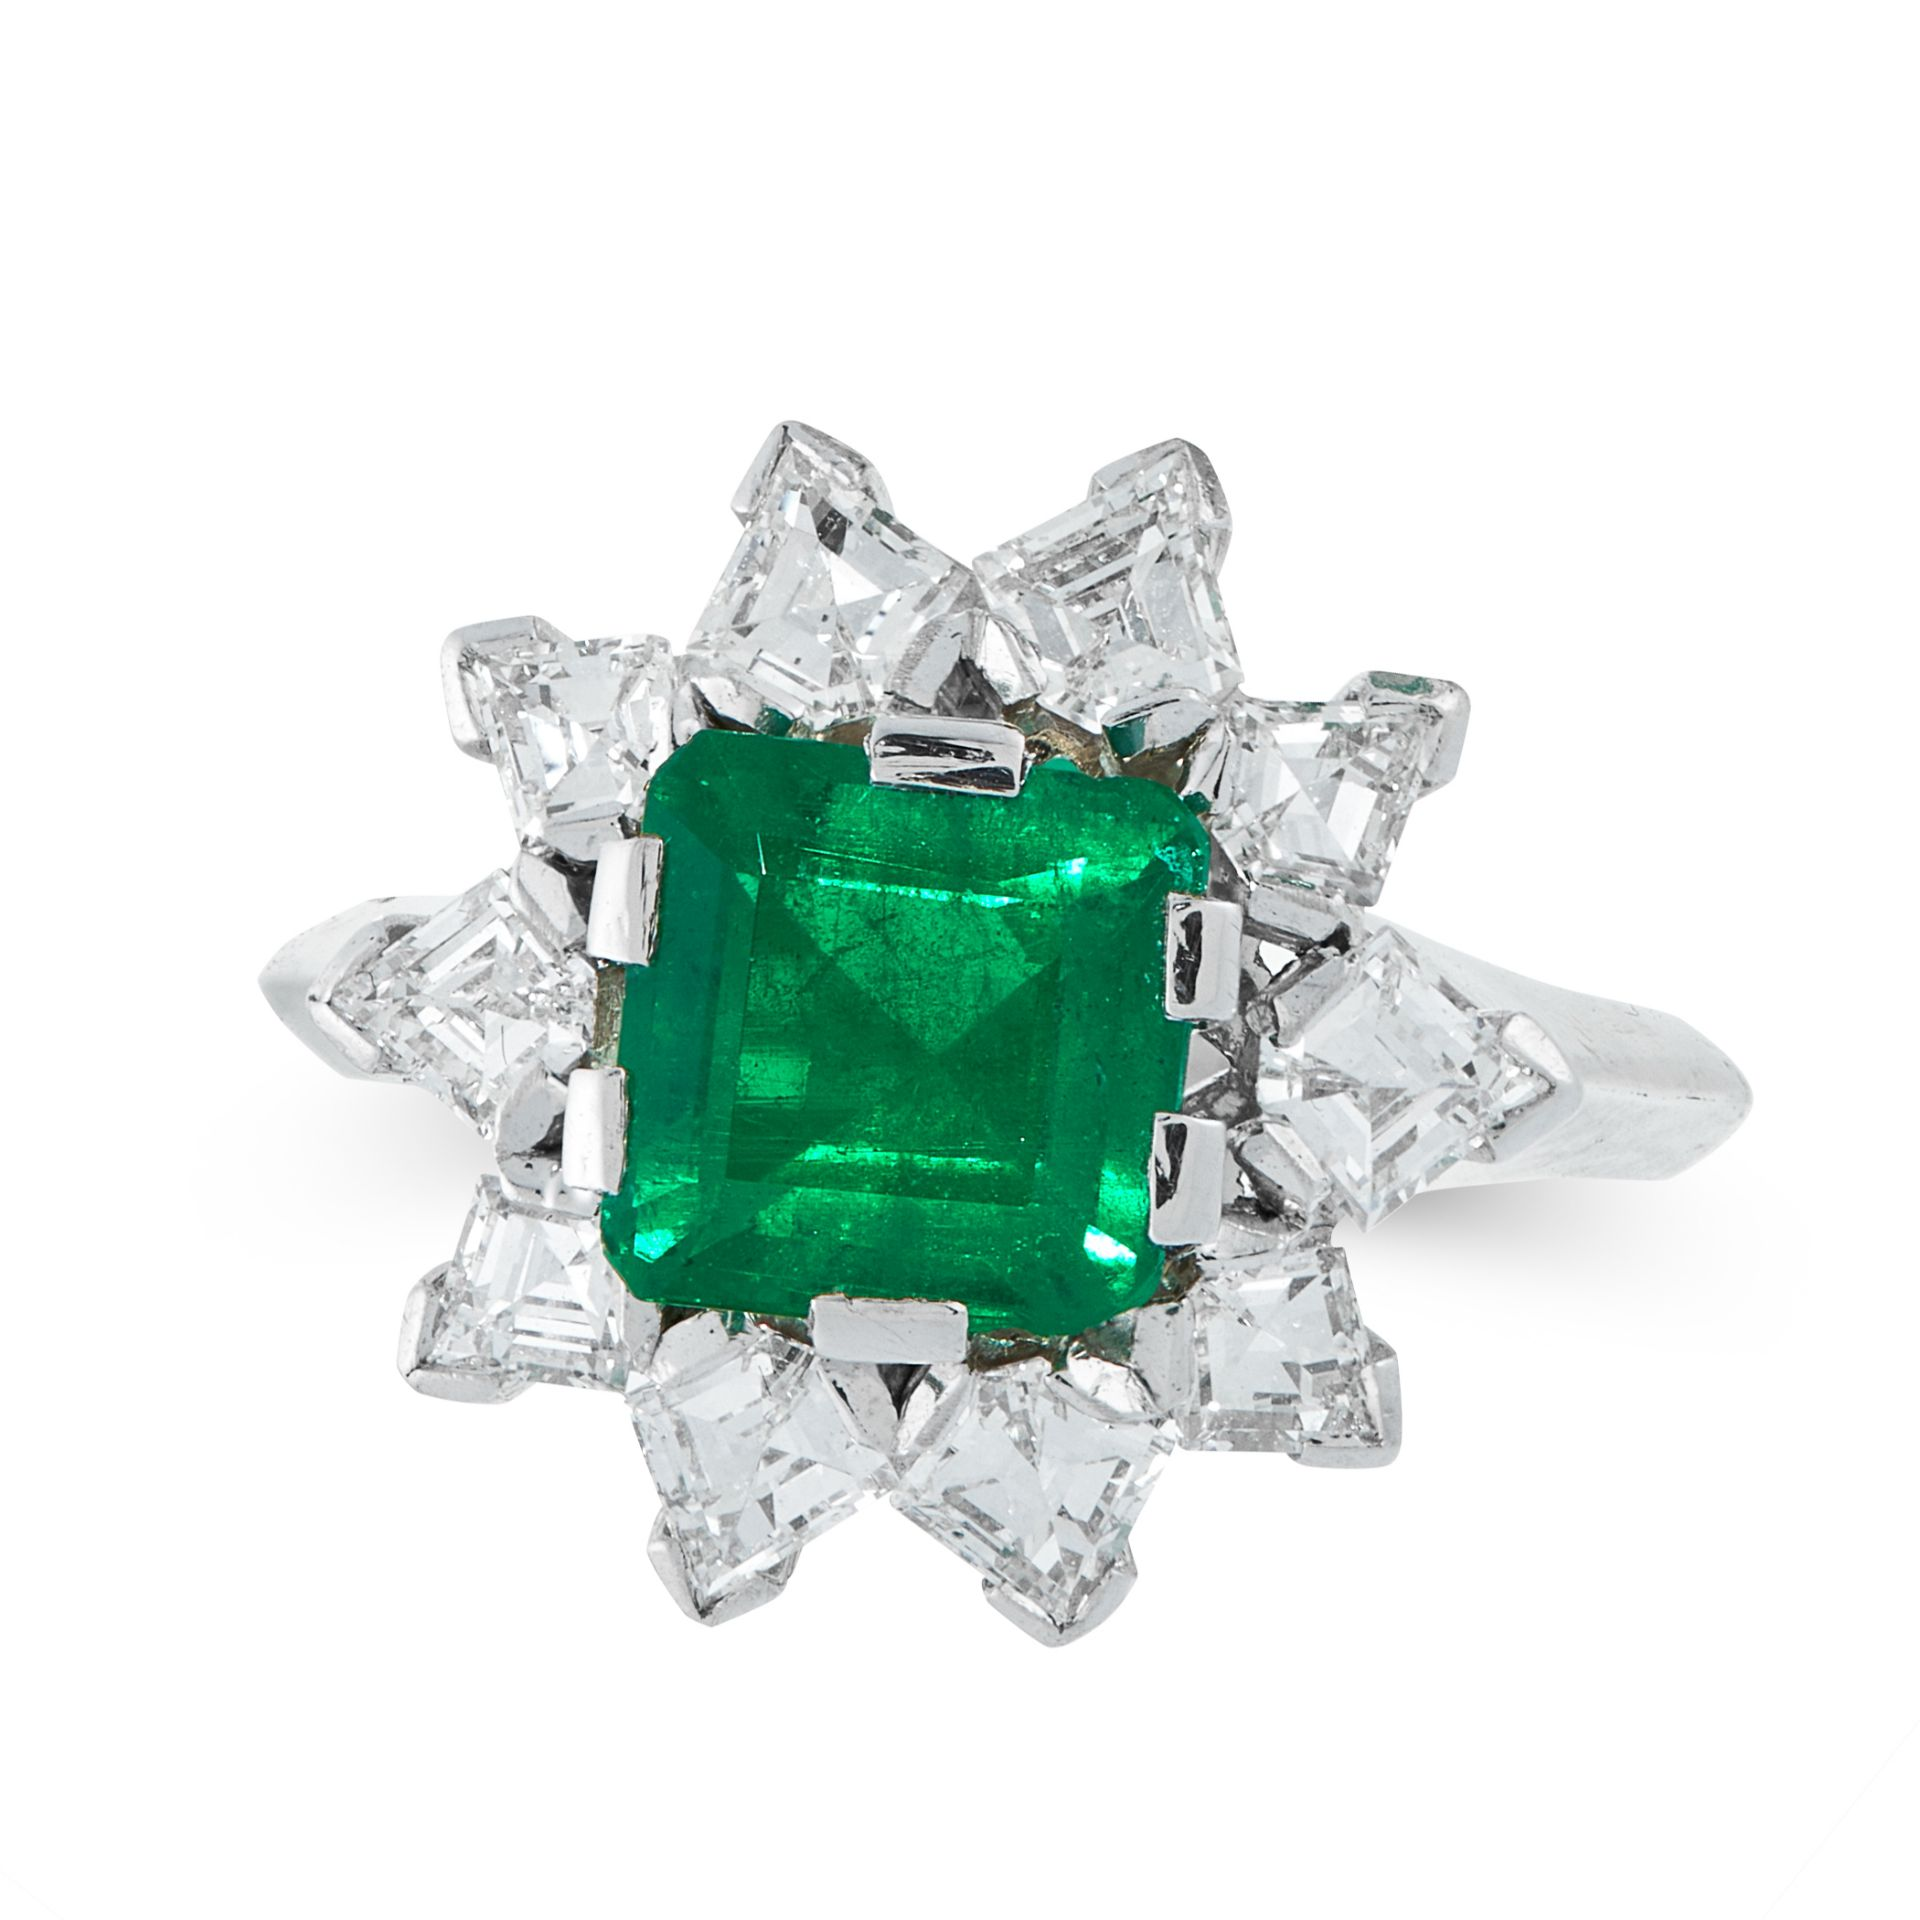 AN EMERALD AND DIAMOND DRESS RING in 18ct white gold, set with an emerald cut emerald of 1.64